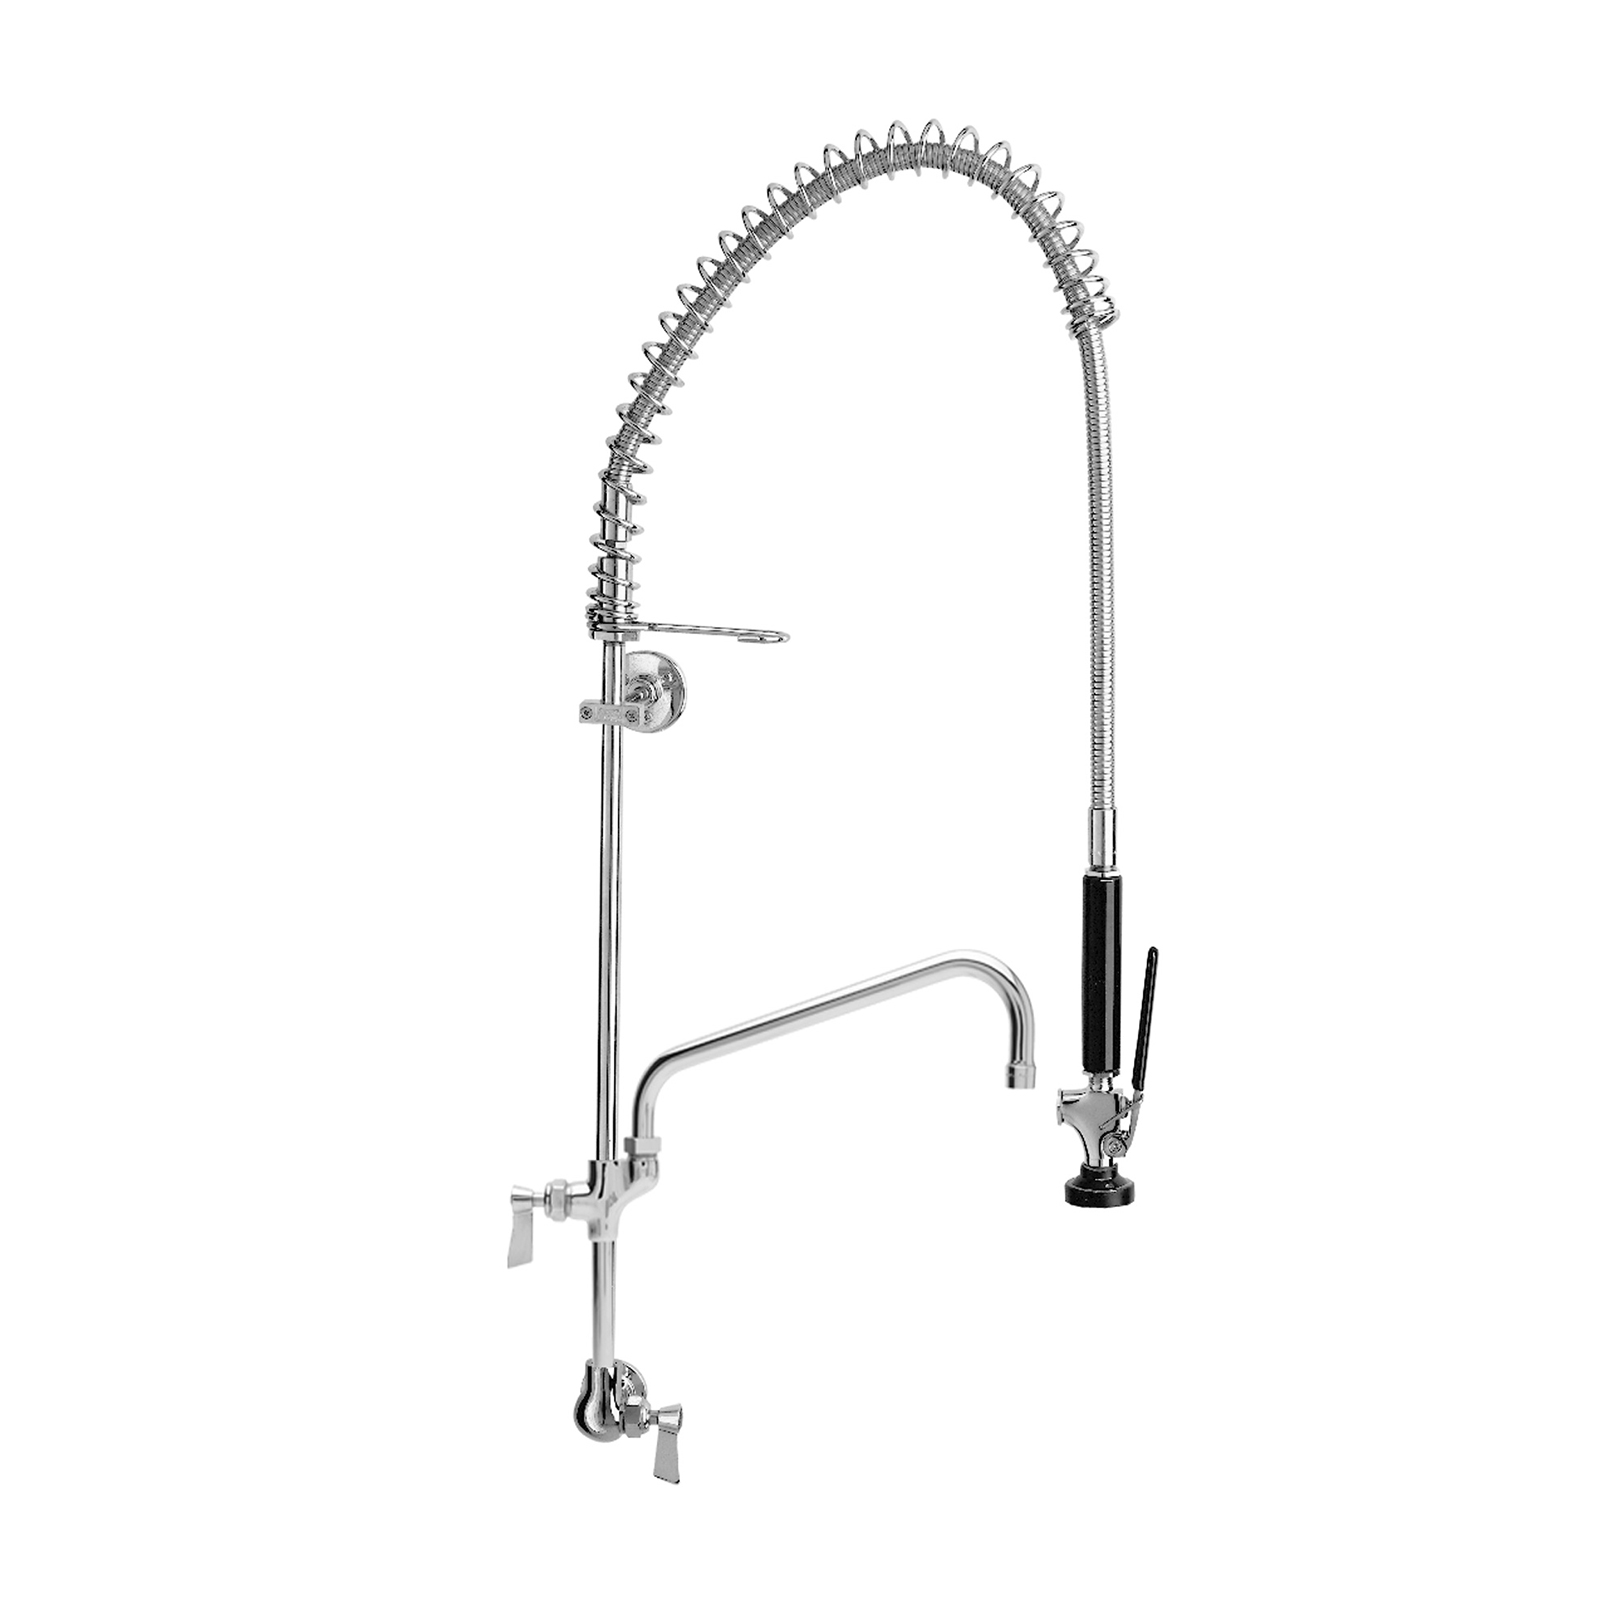 Fisher 34606 pre-rinse faucet assembly, with add on faucet